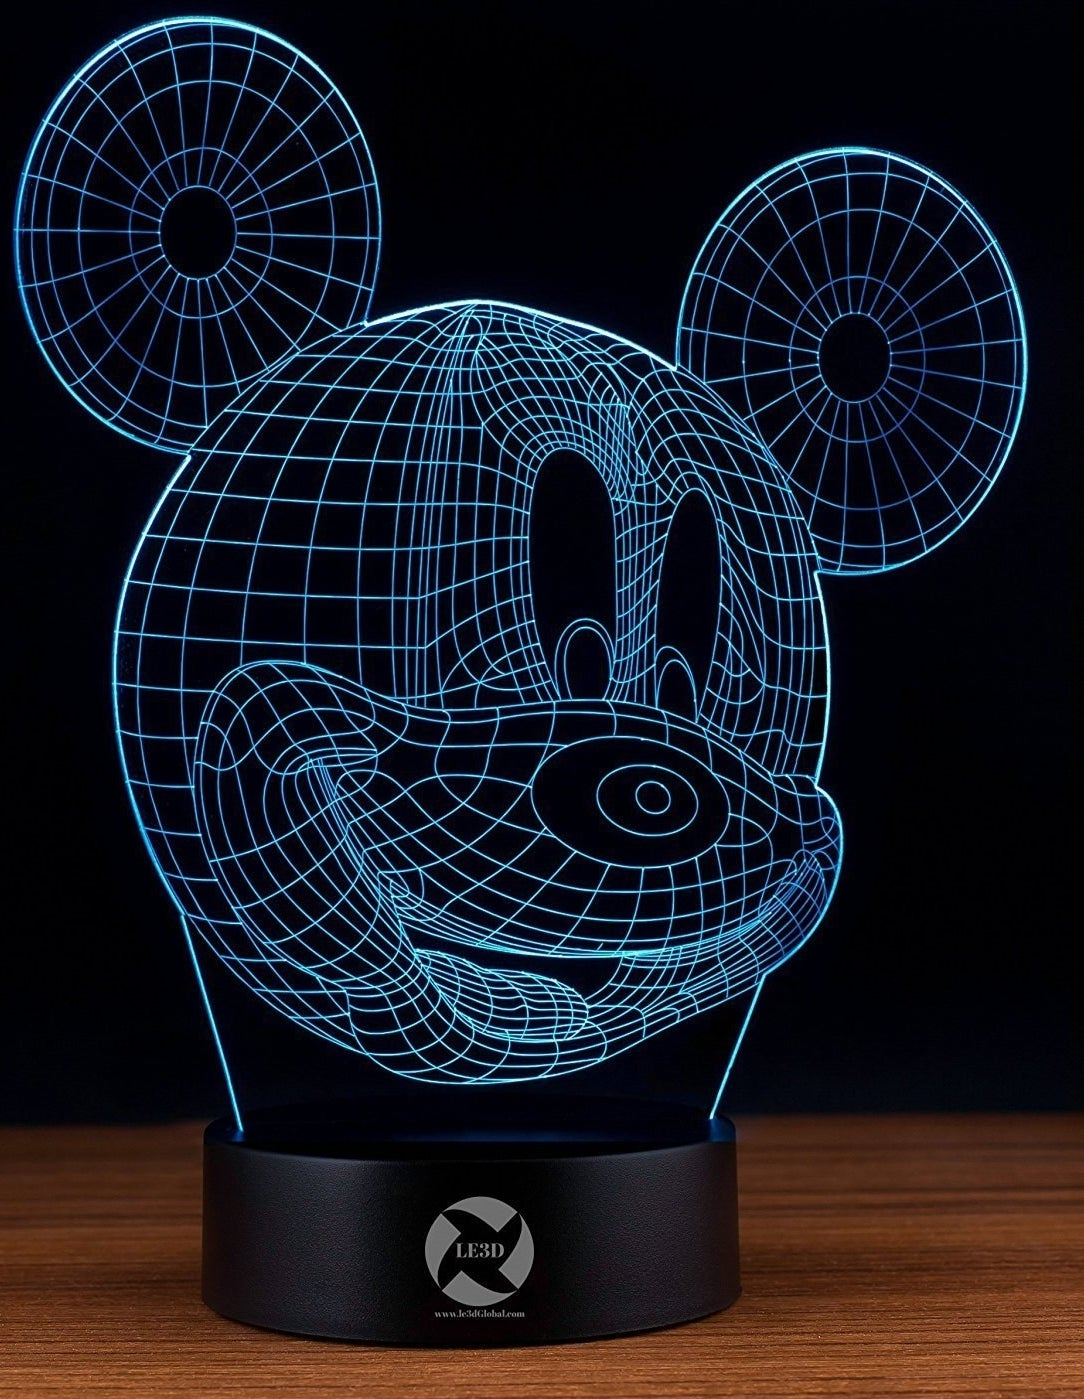 Peel and Stick Vinyl Decal Sticker Skin for Your Phone Grip Wishes Mickey Head Fireworks